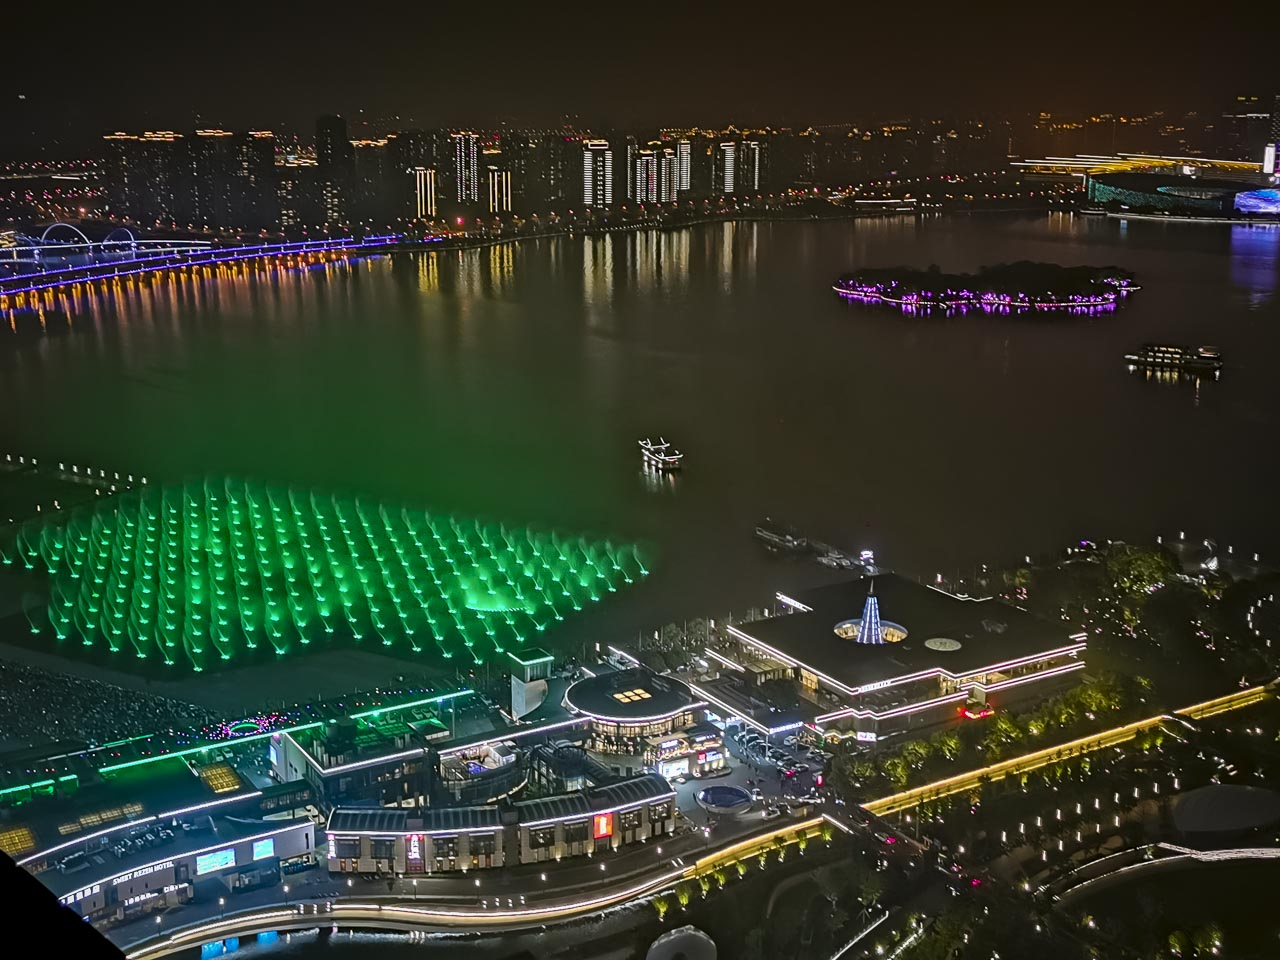 The Suzhou Light show